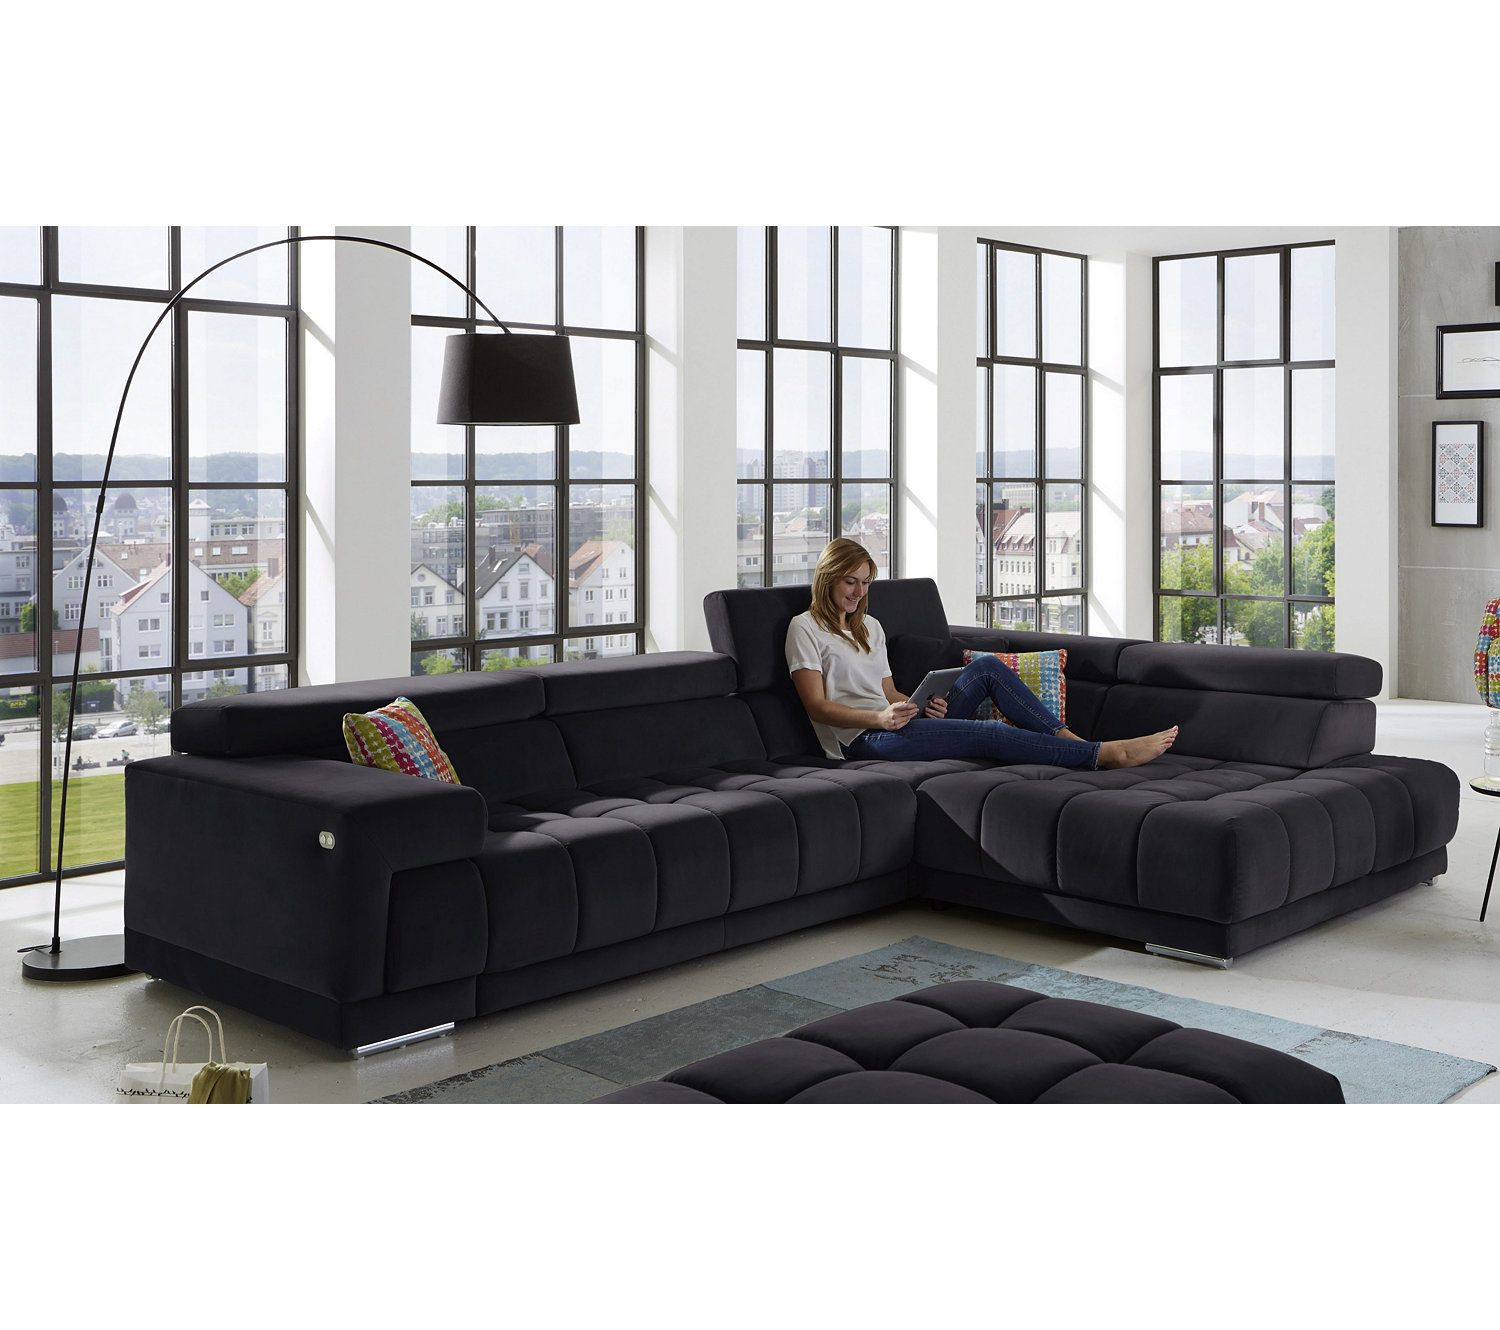 Canape Dangle Droit Relax Pack Full Option Ocean Tissu Salsa Anthracite Canape Angle Meubles De Salon Modernes Disposition De Meubles De Salon